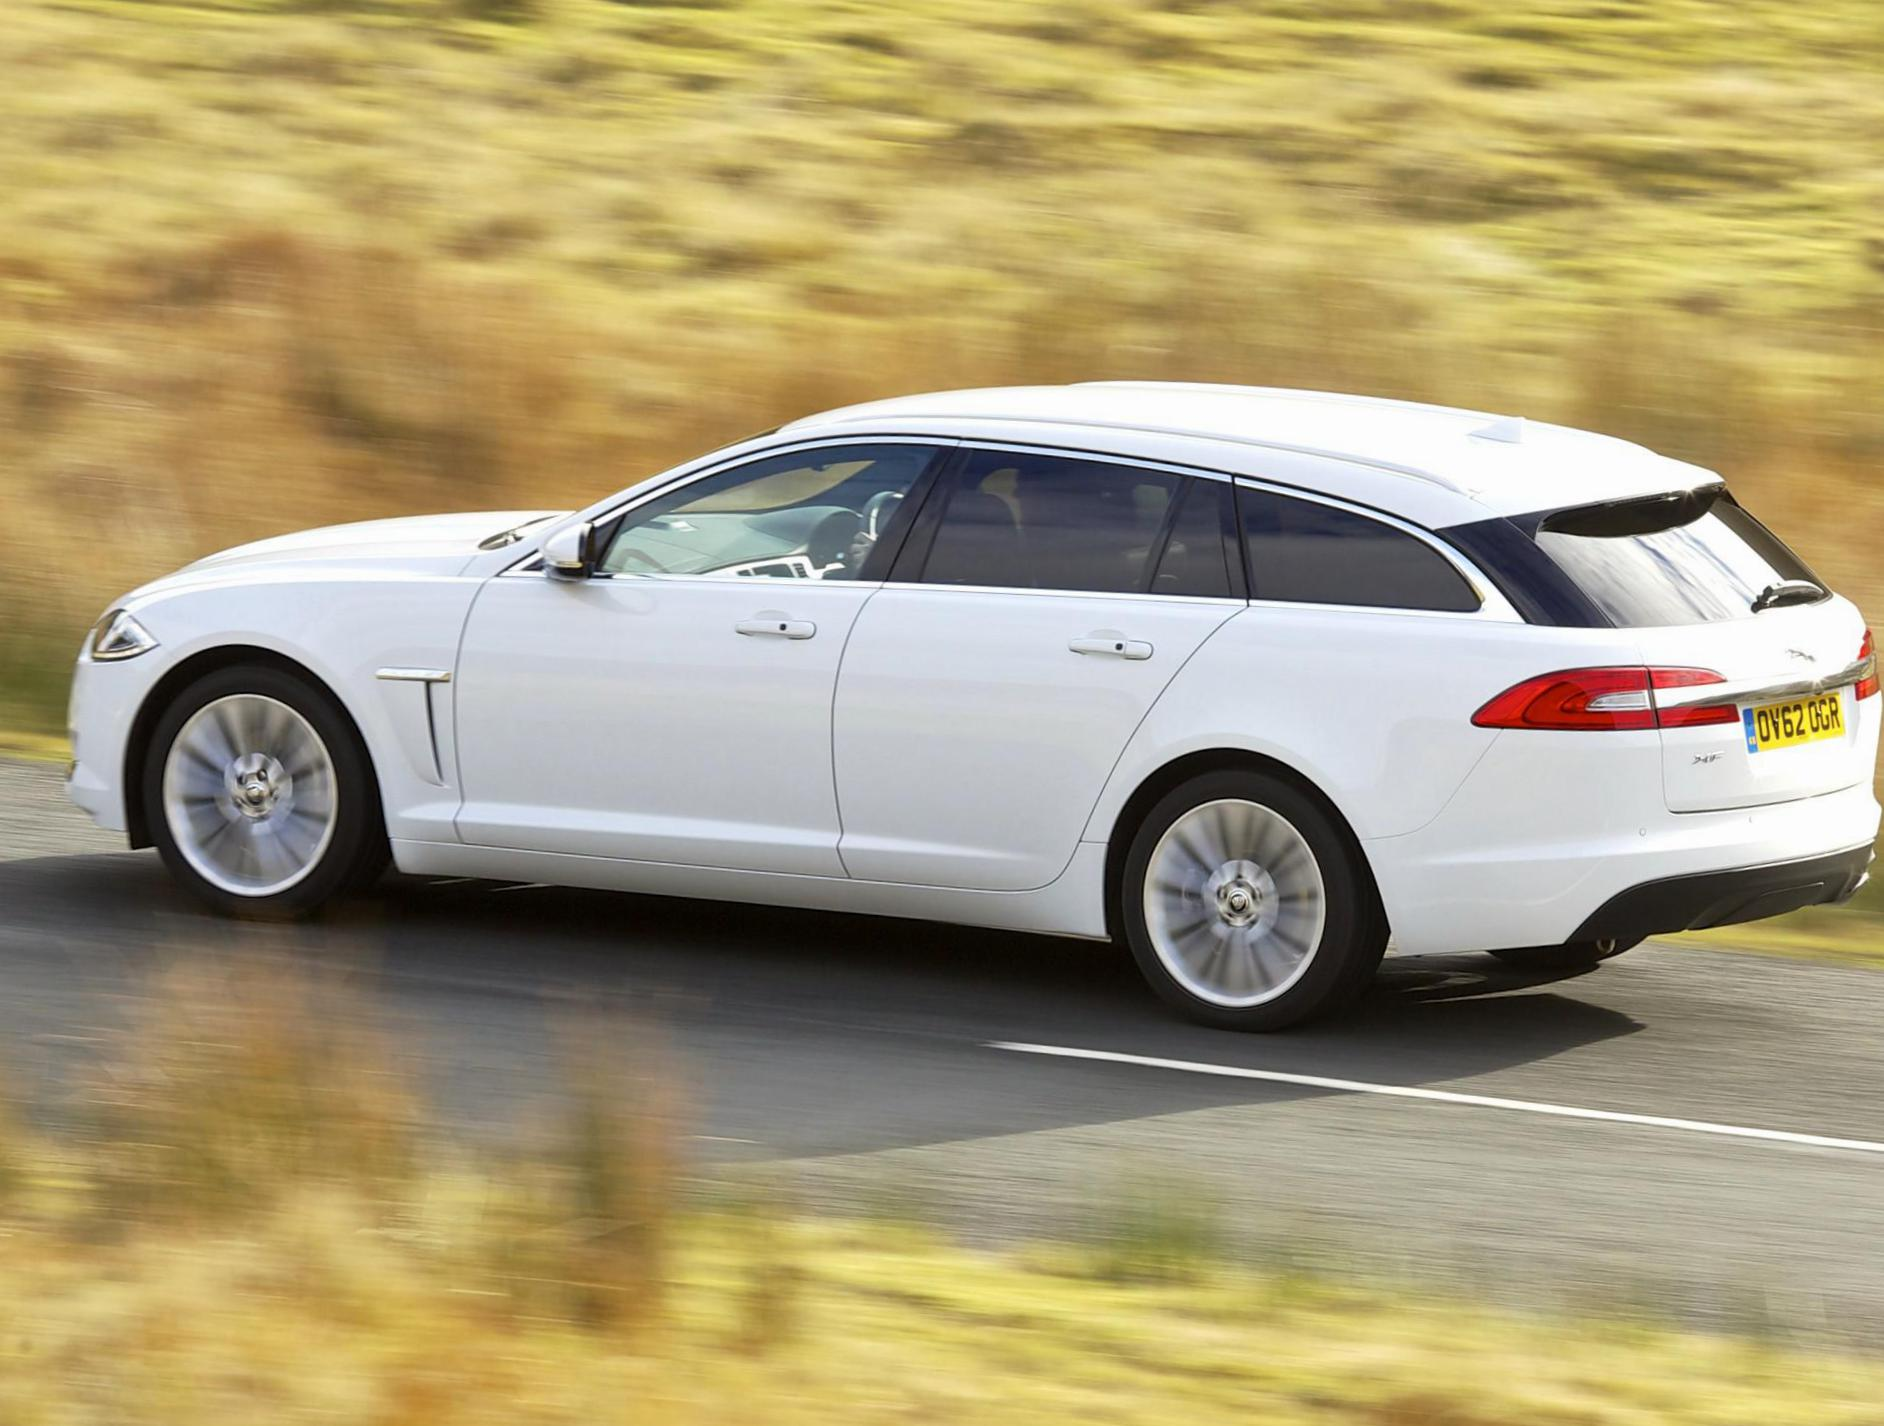 XF Sportbrake Jaguar for sale 2014